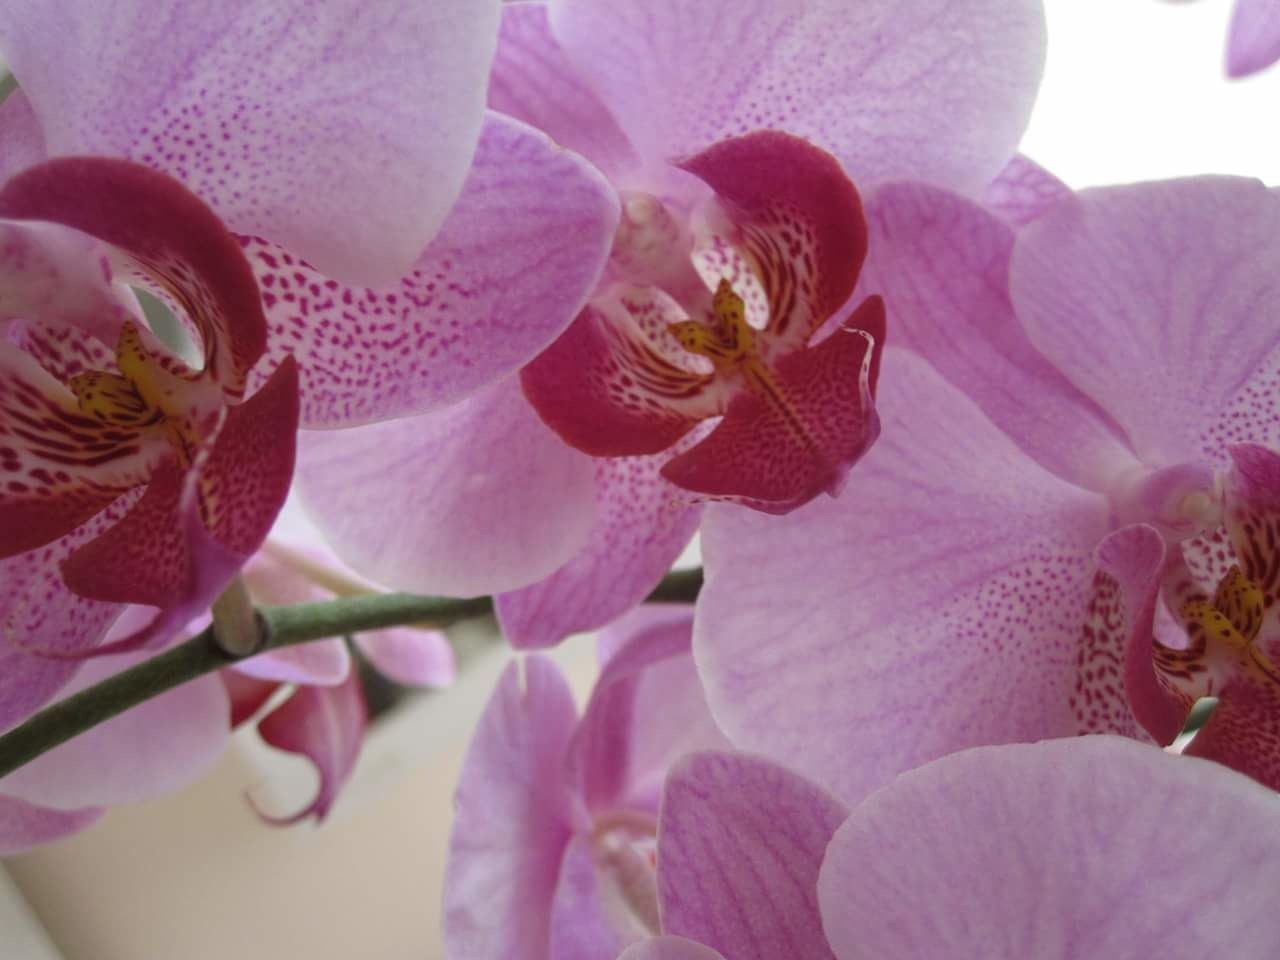 Flower Fragility Nature Beauty In Nature Orchid No People Petal Freshness Plant Close-up Flower Head Beauty Pink Color Outdoors Day Nofilter Beauty In Nature Orchids